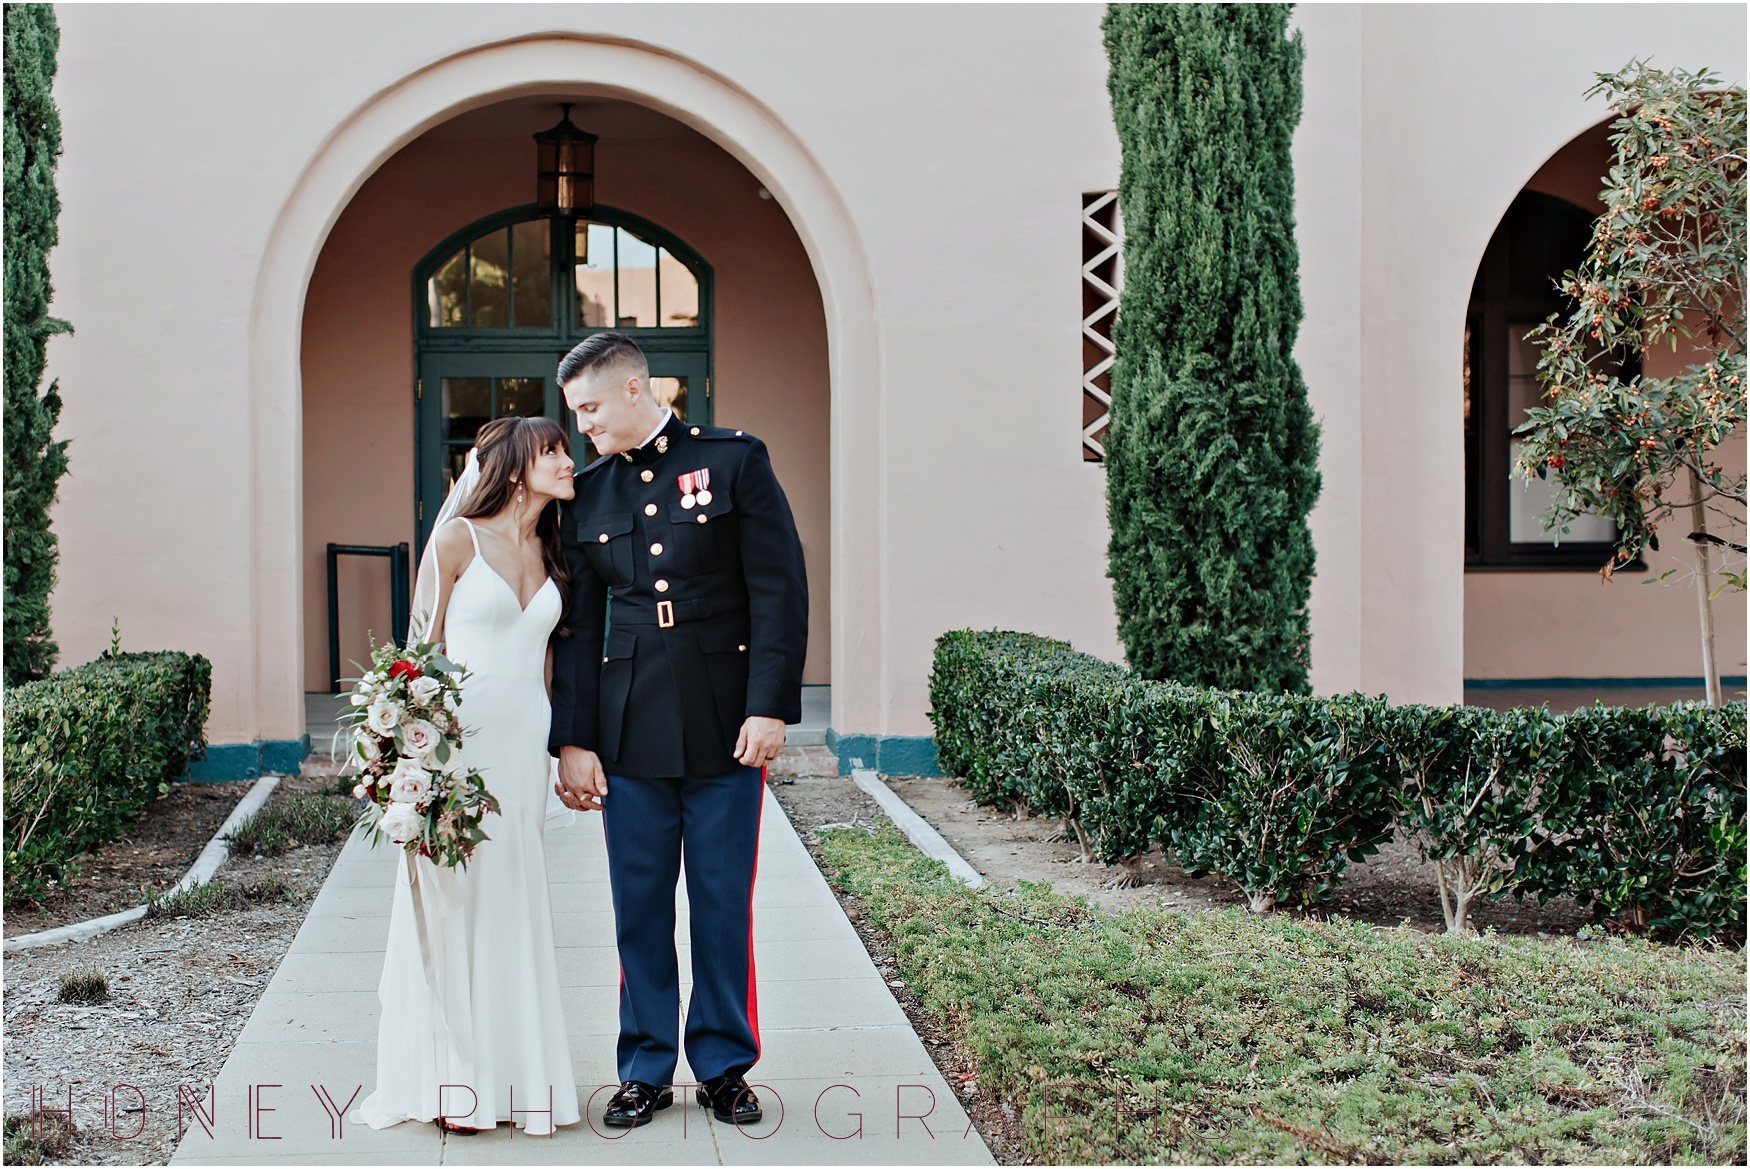 bricksandiegomilitaryurbanwedding0036.JPG